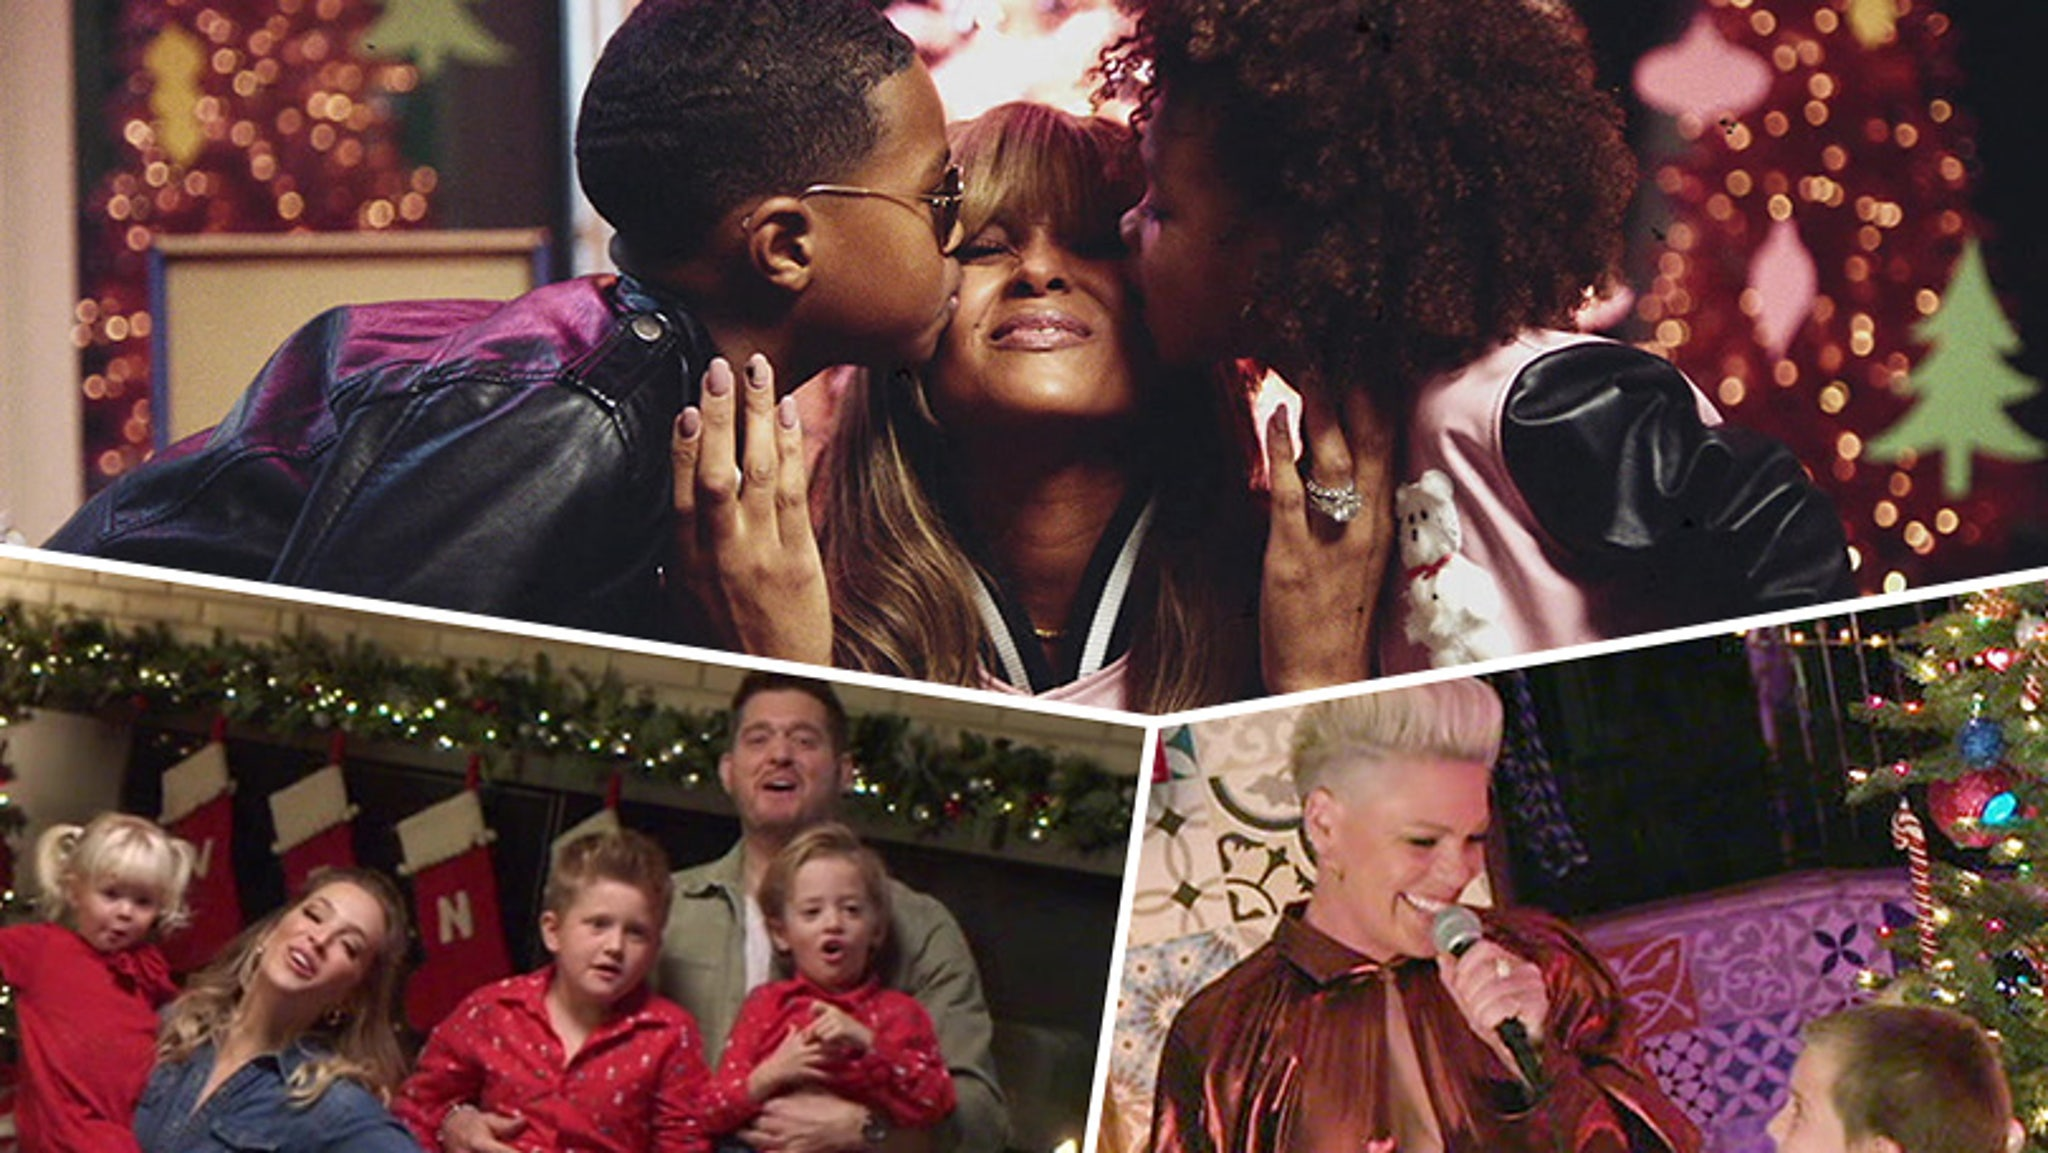 Pink, Ciara and Michael Buble's Kids Steal the Show on ABC's Disney Holiday Singalong - TooFab